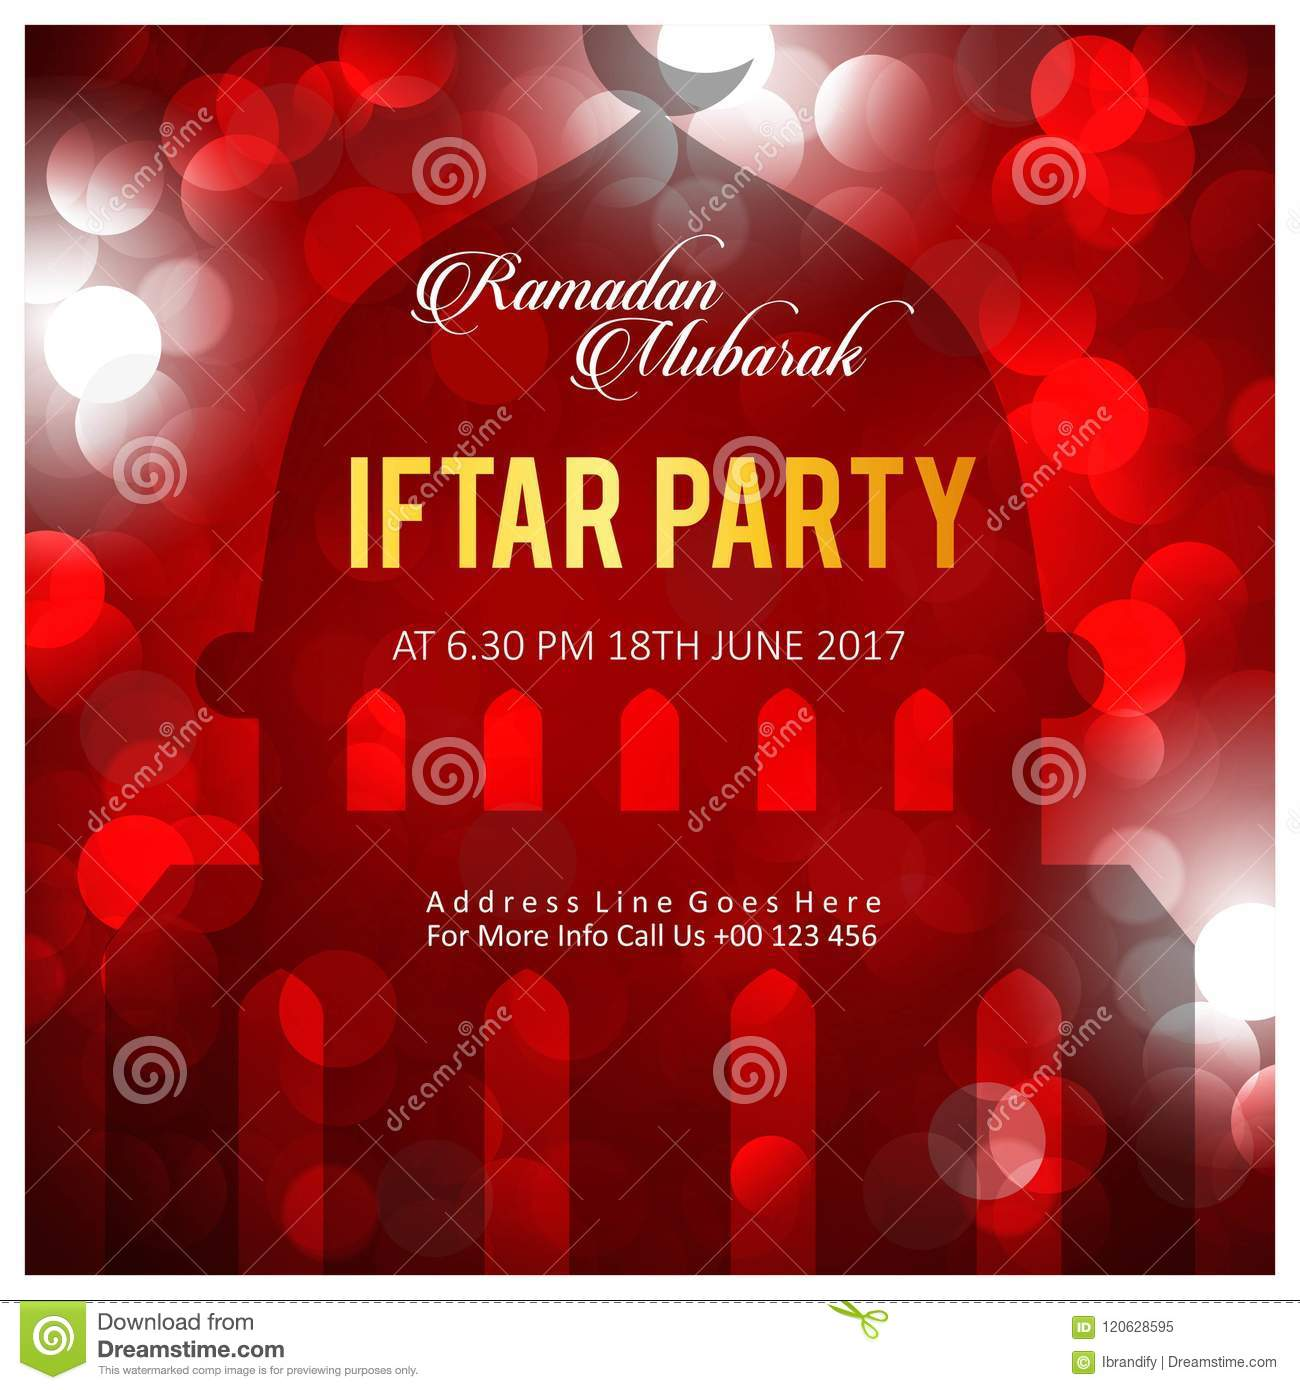 Elegant Iftar Party Invitation Card Design Decorated With Blacki ...